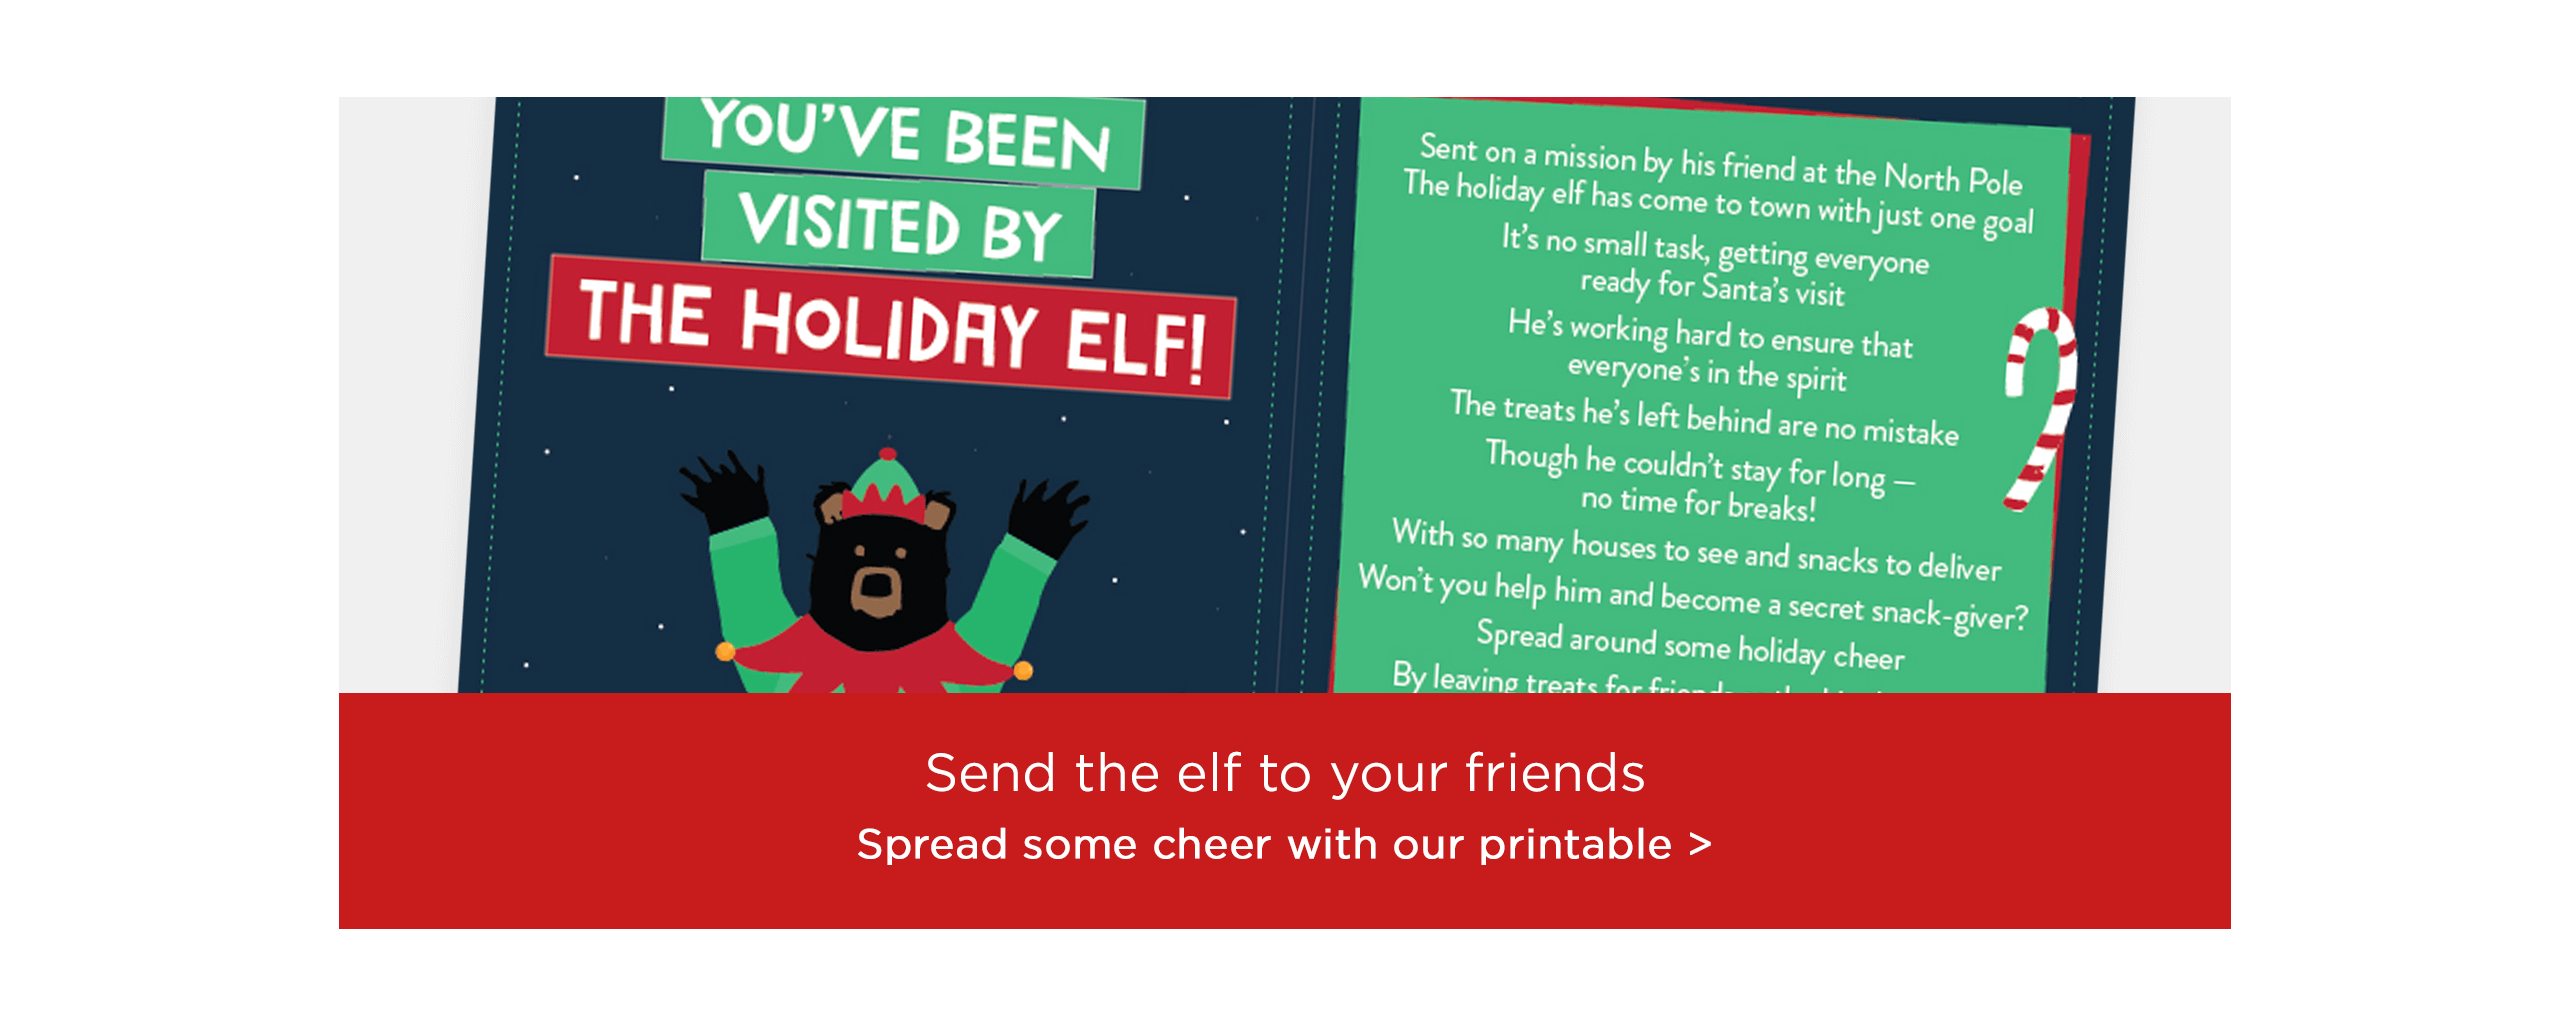 Spread some cheer with our holiday printable